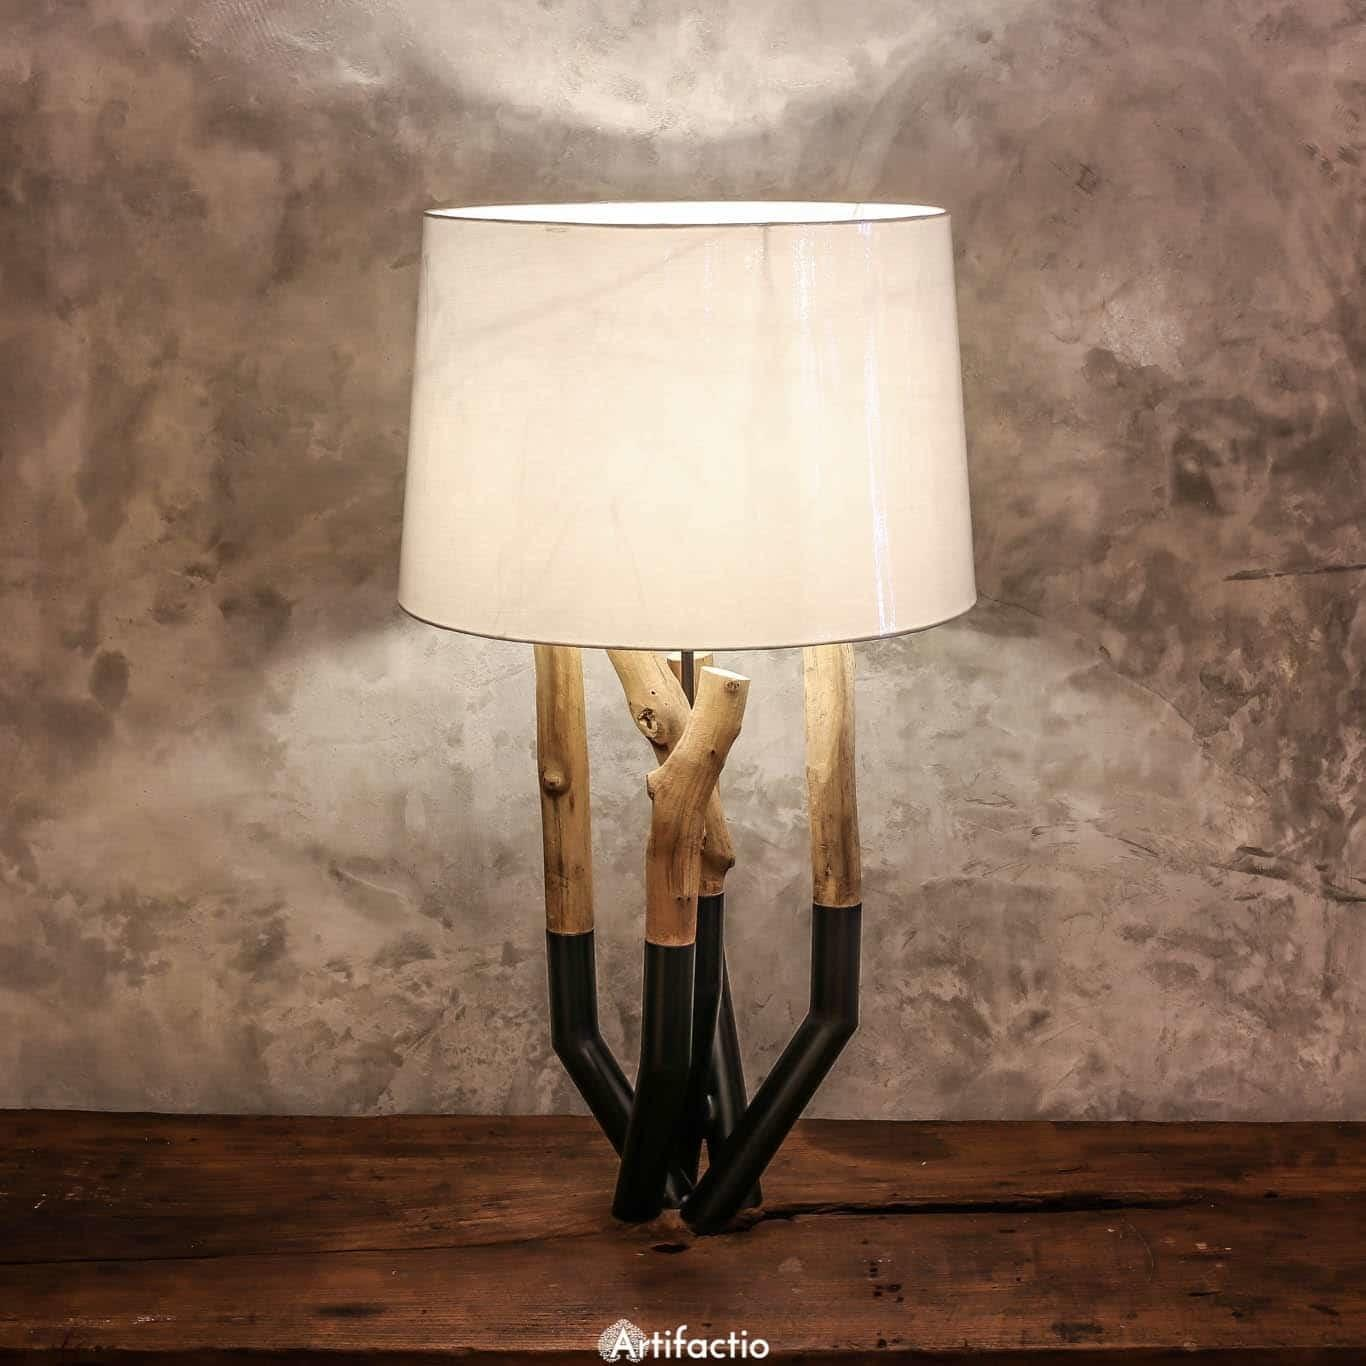 Unique Handmade Metal Driftwood Table Lamp Artifactio